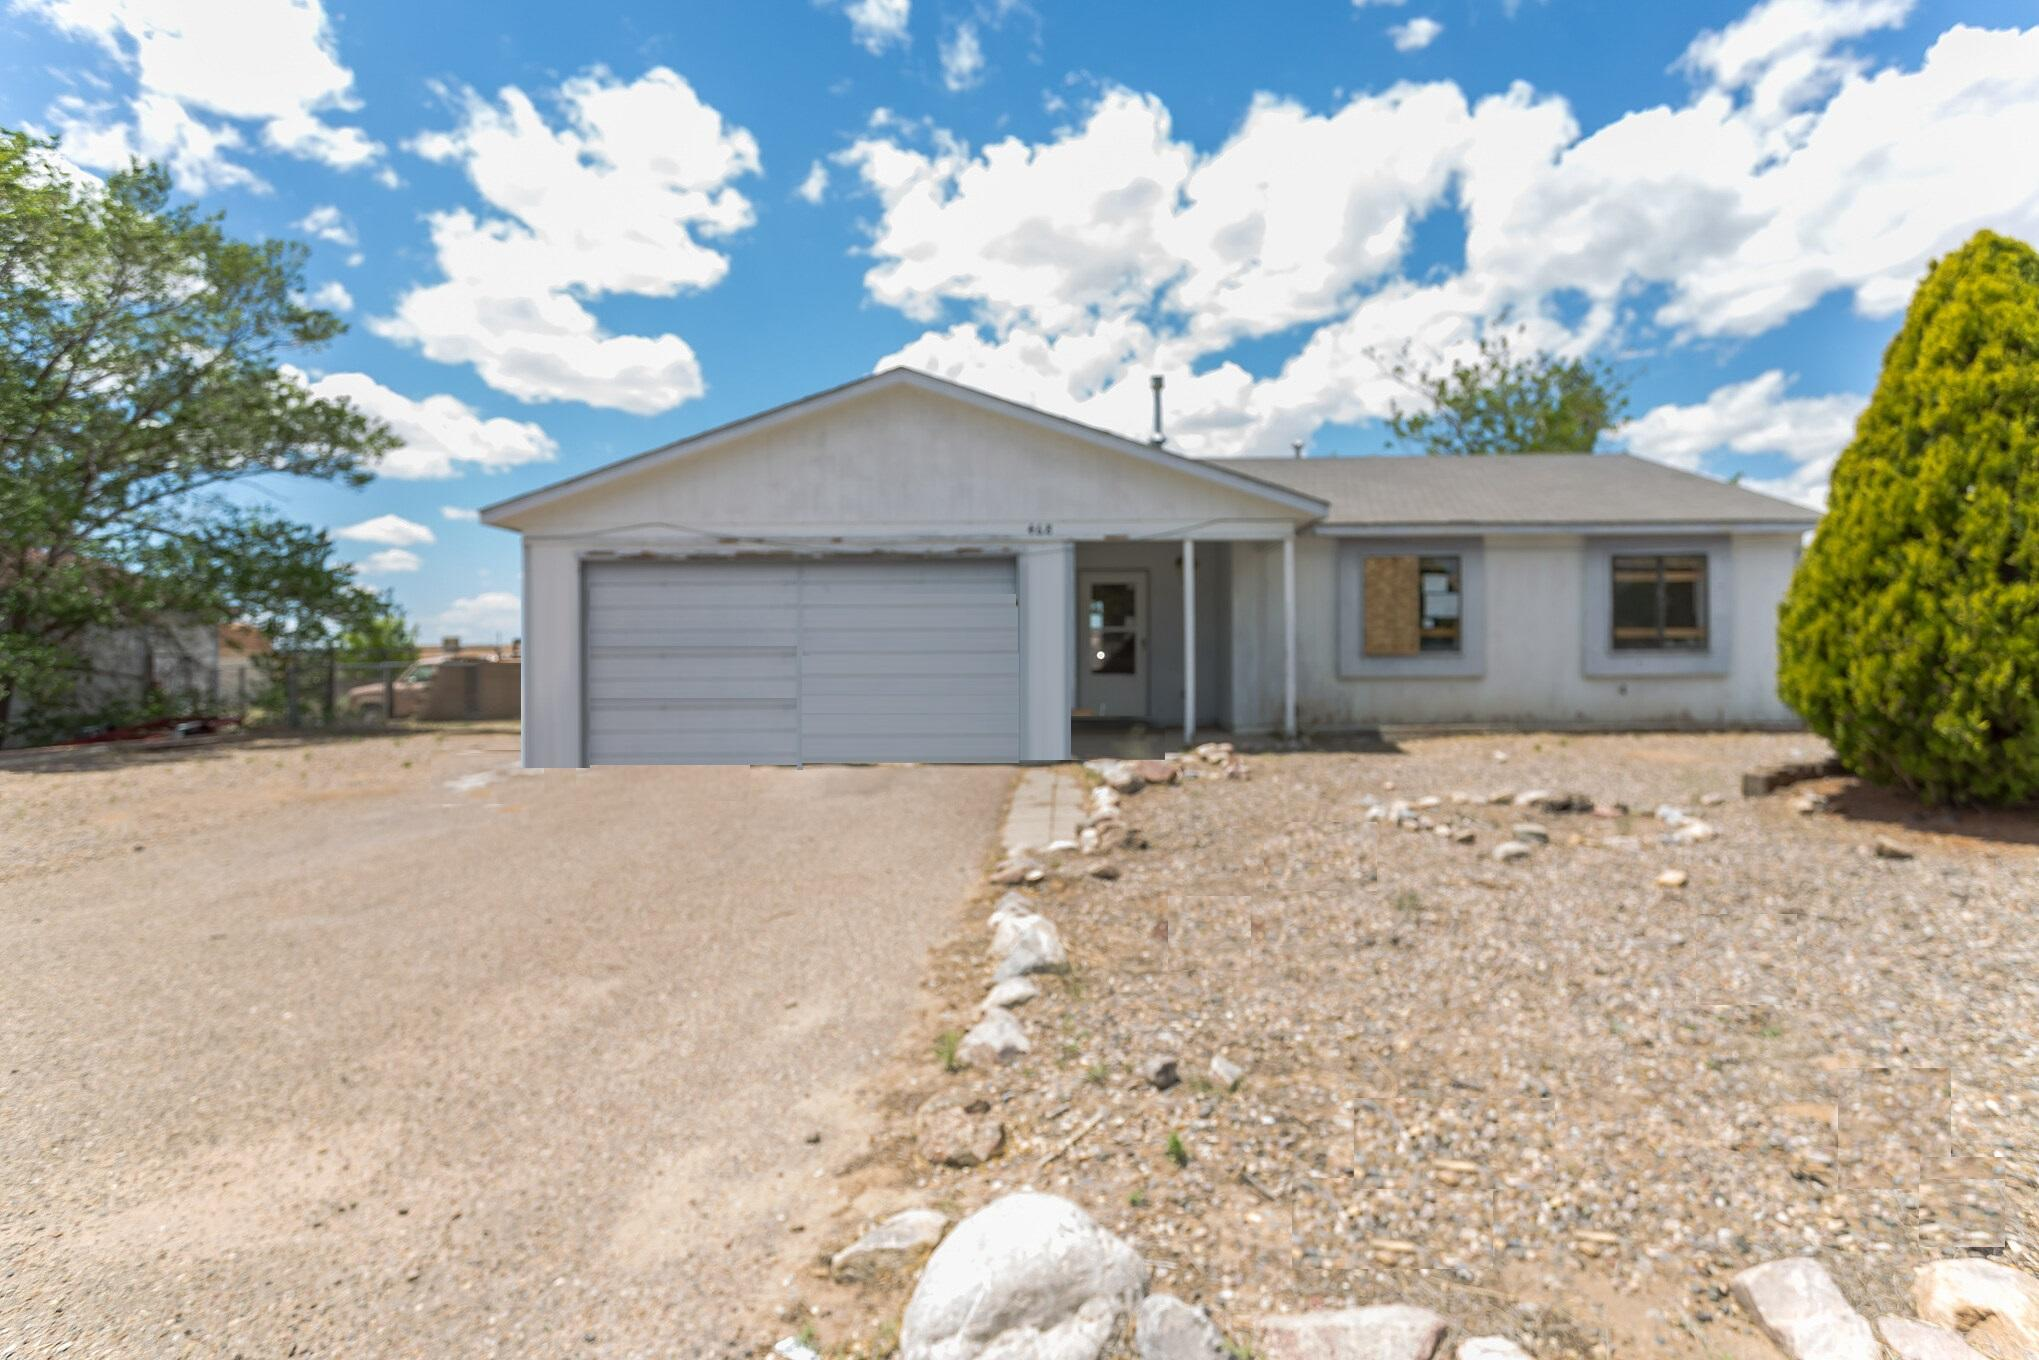 Investor special. Nice single story home on a large lot in need of rehab. Property features 3 bedrooms, 1.5 baths and alarge kitchen with plenty of cabinet space. The home is in need of significant repairs but has good potential.